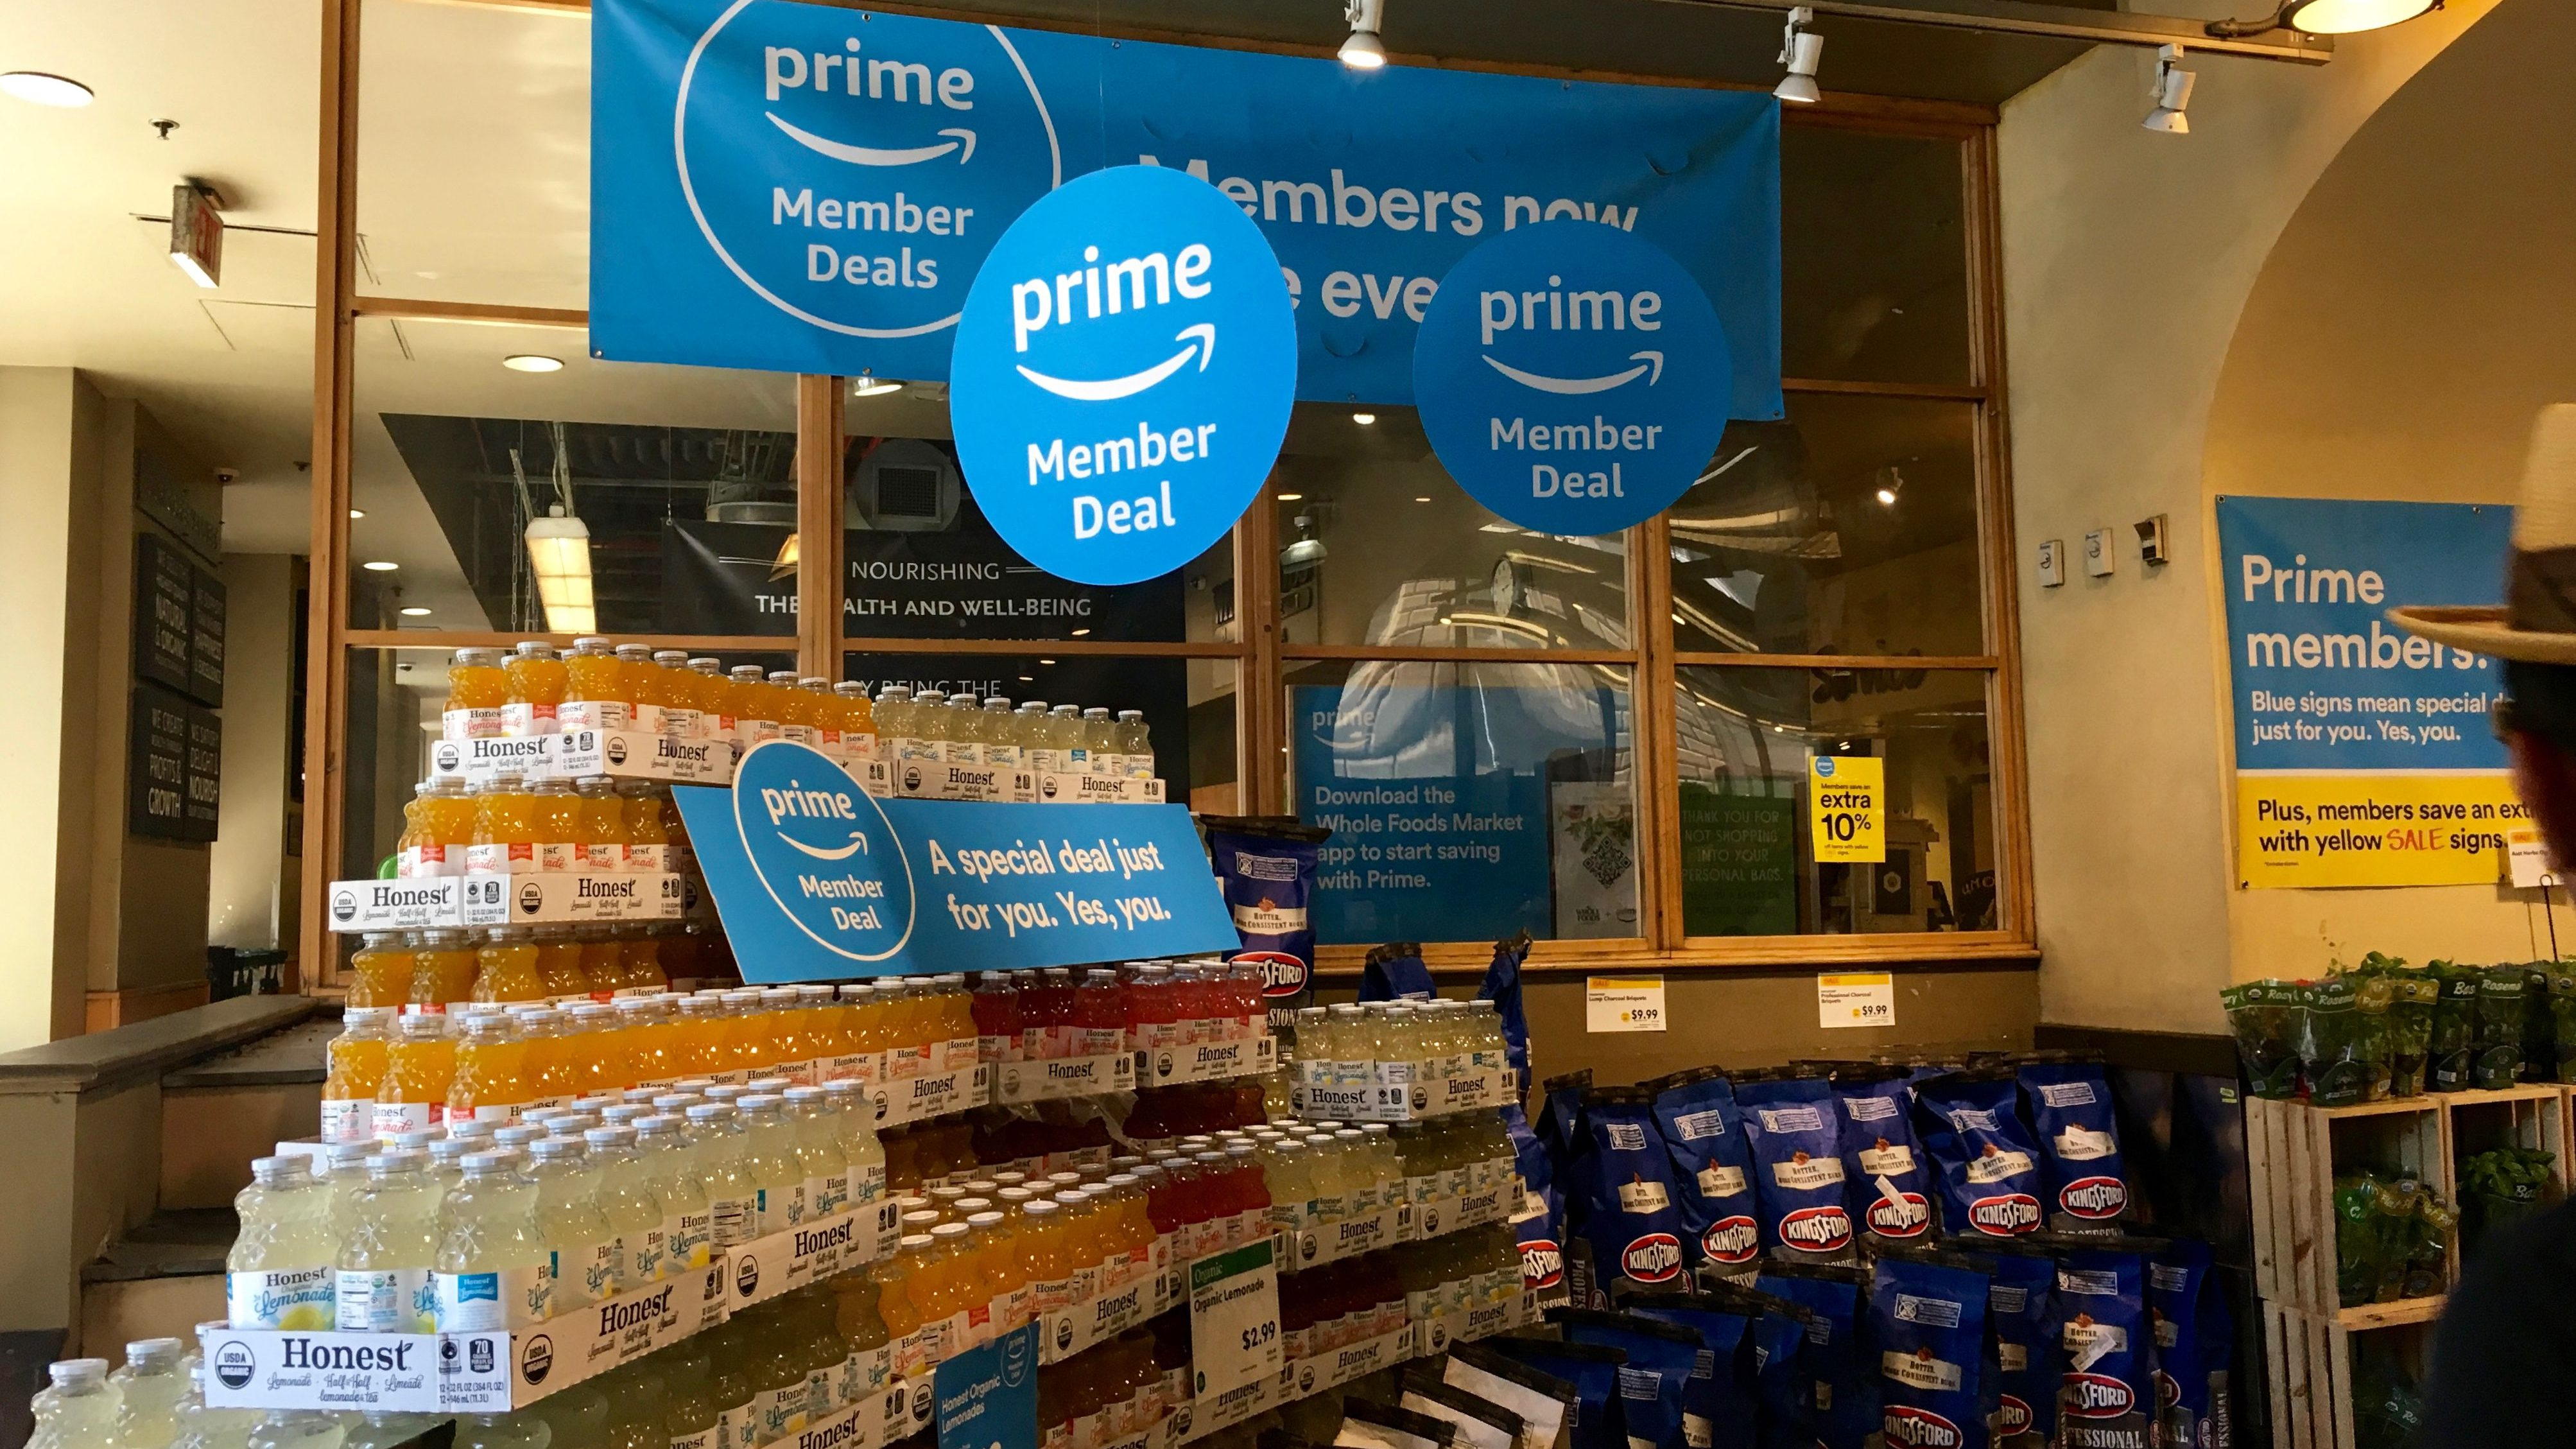 Whole Foods Amazon Prime discounts show how middle class is shrinking photo